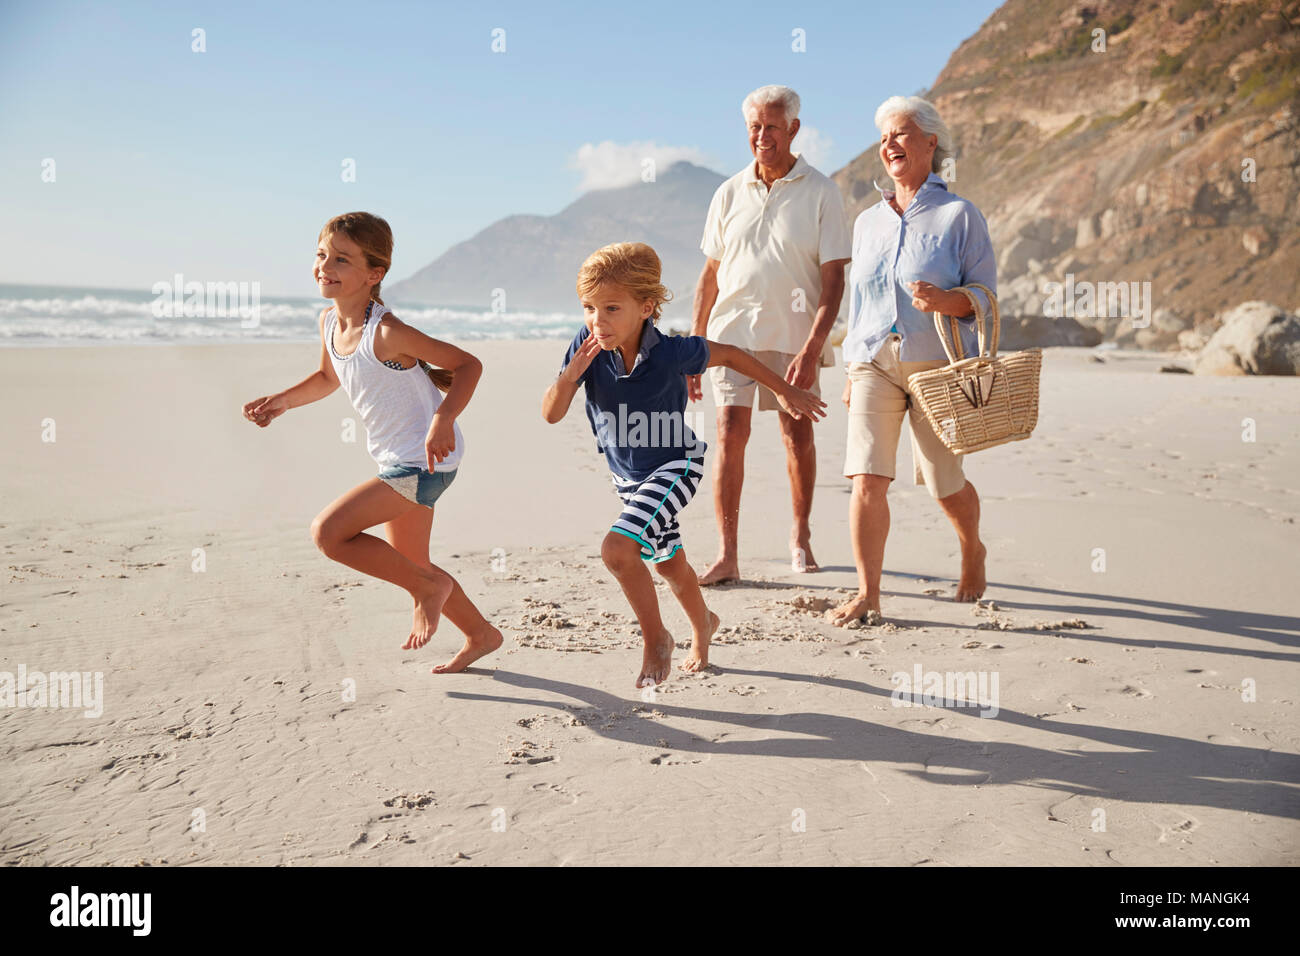 Les grands-parents le long de plage avec des petits-enfants Photo Stock